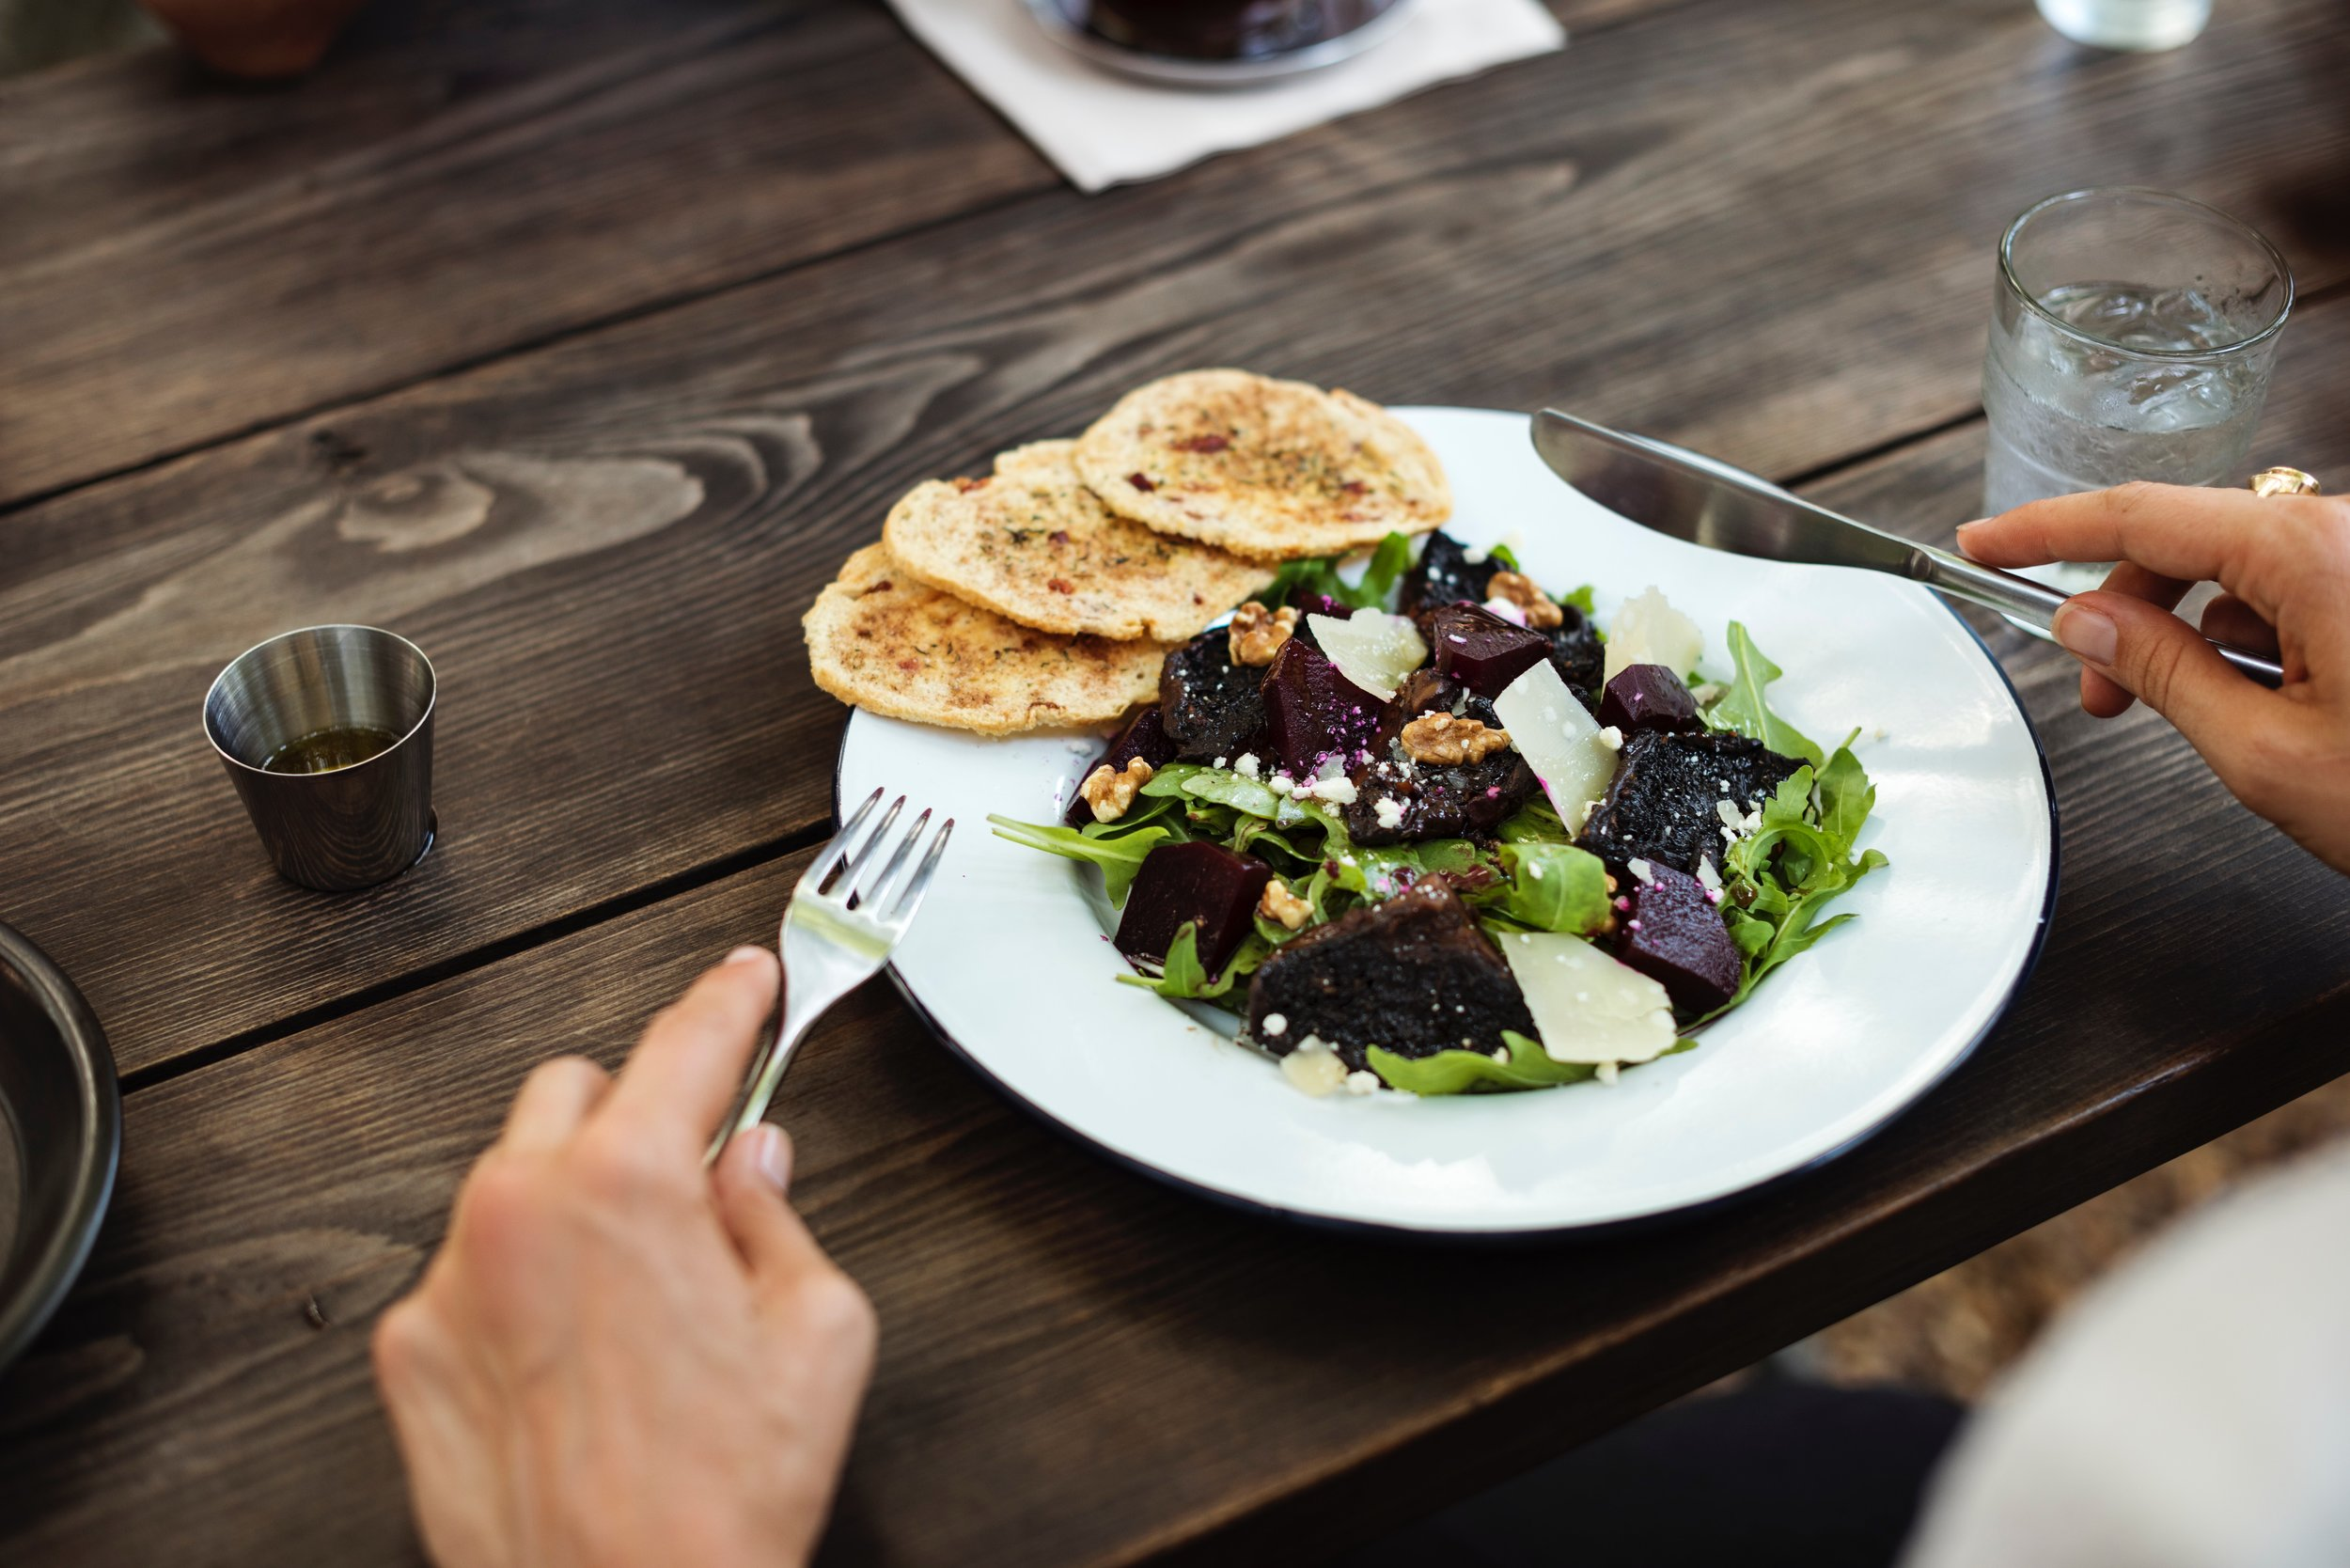 Stop Eating at 80% Full - HEALTHY LIVING HABIT #2